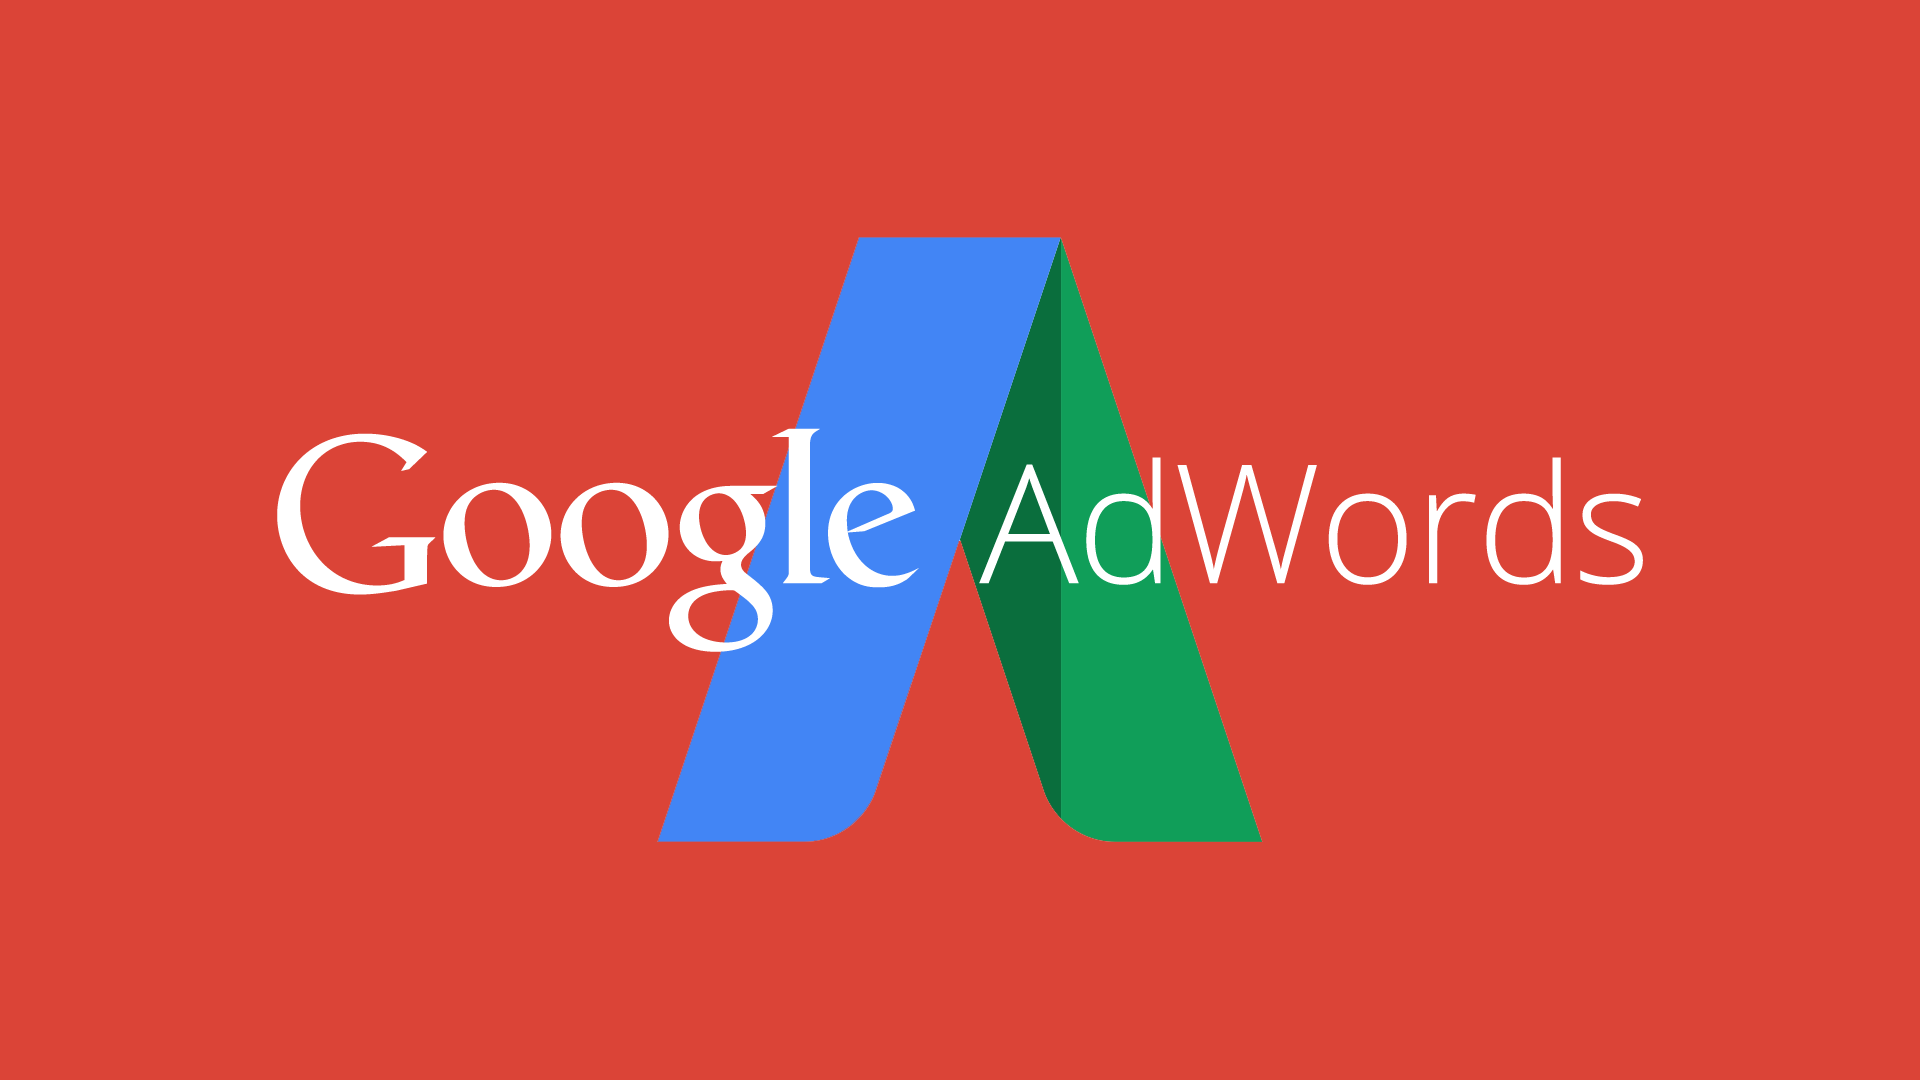 ¿Sabes que es Google Adwords?